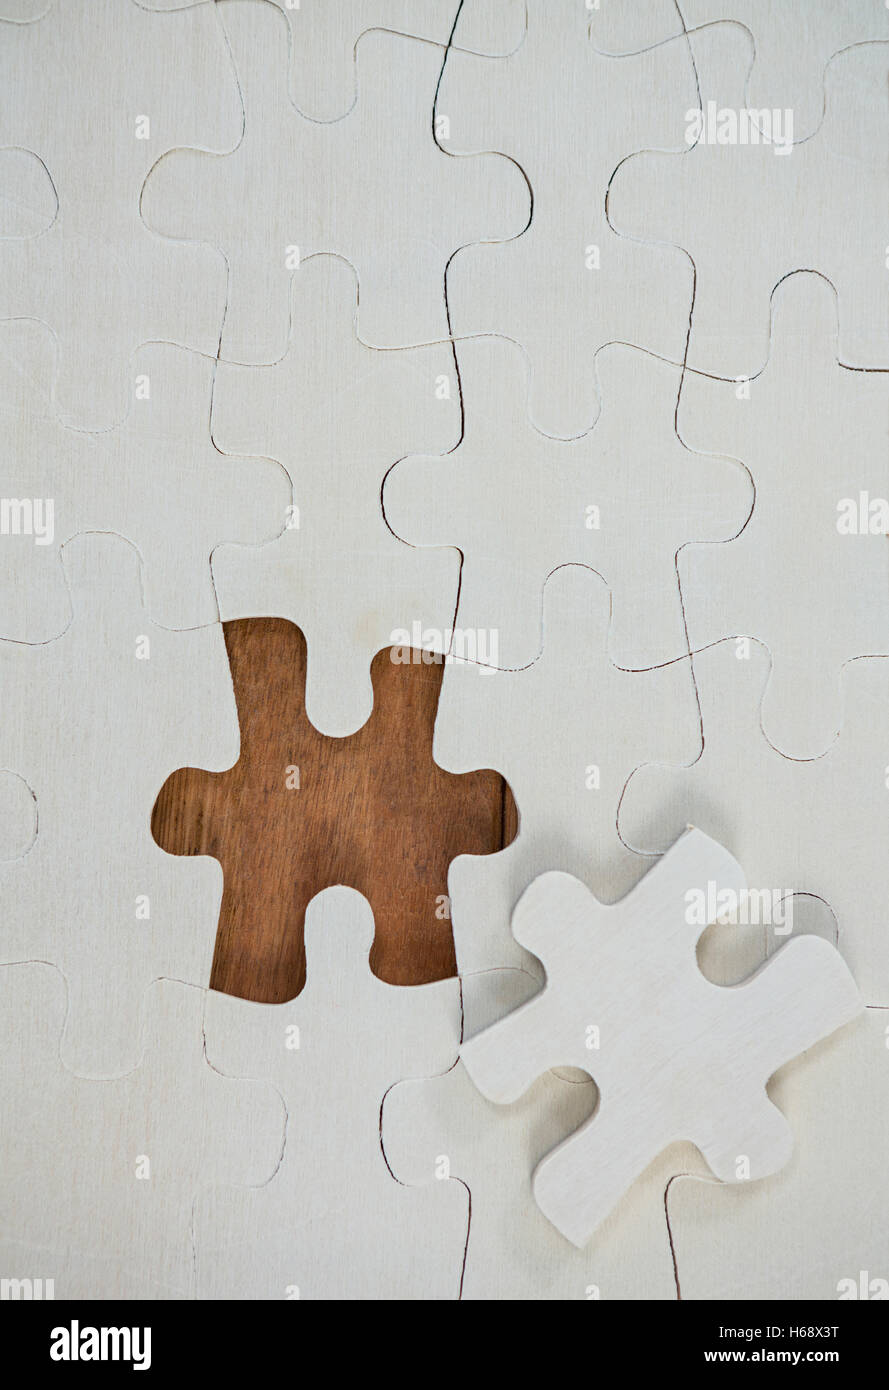 Jigsaw puzzle with one piece separately - Stock Image